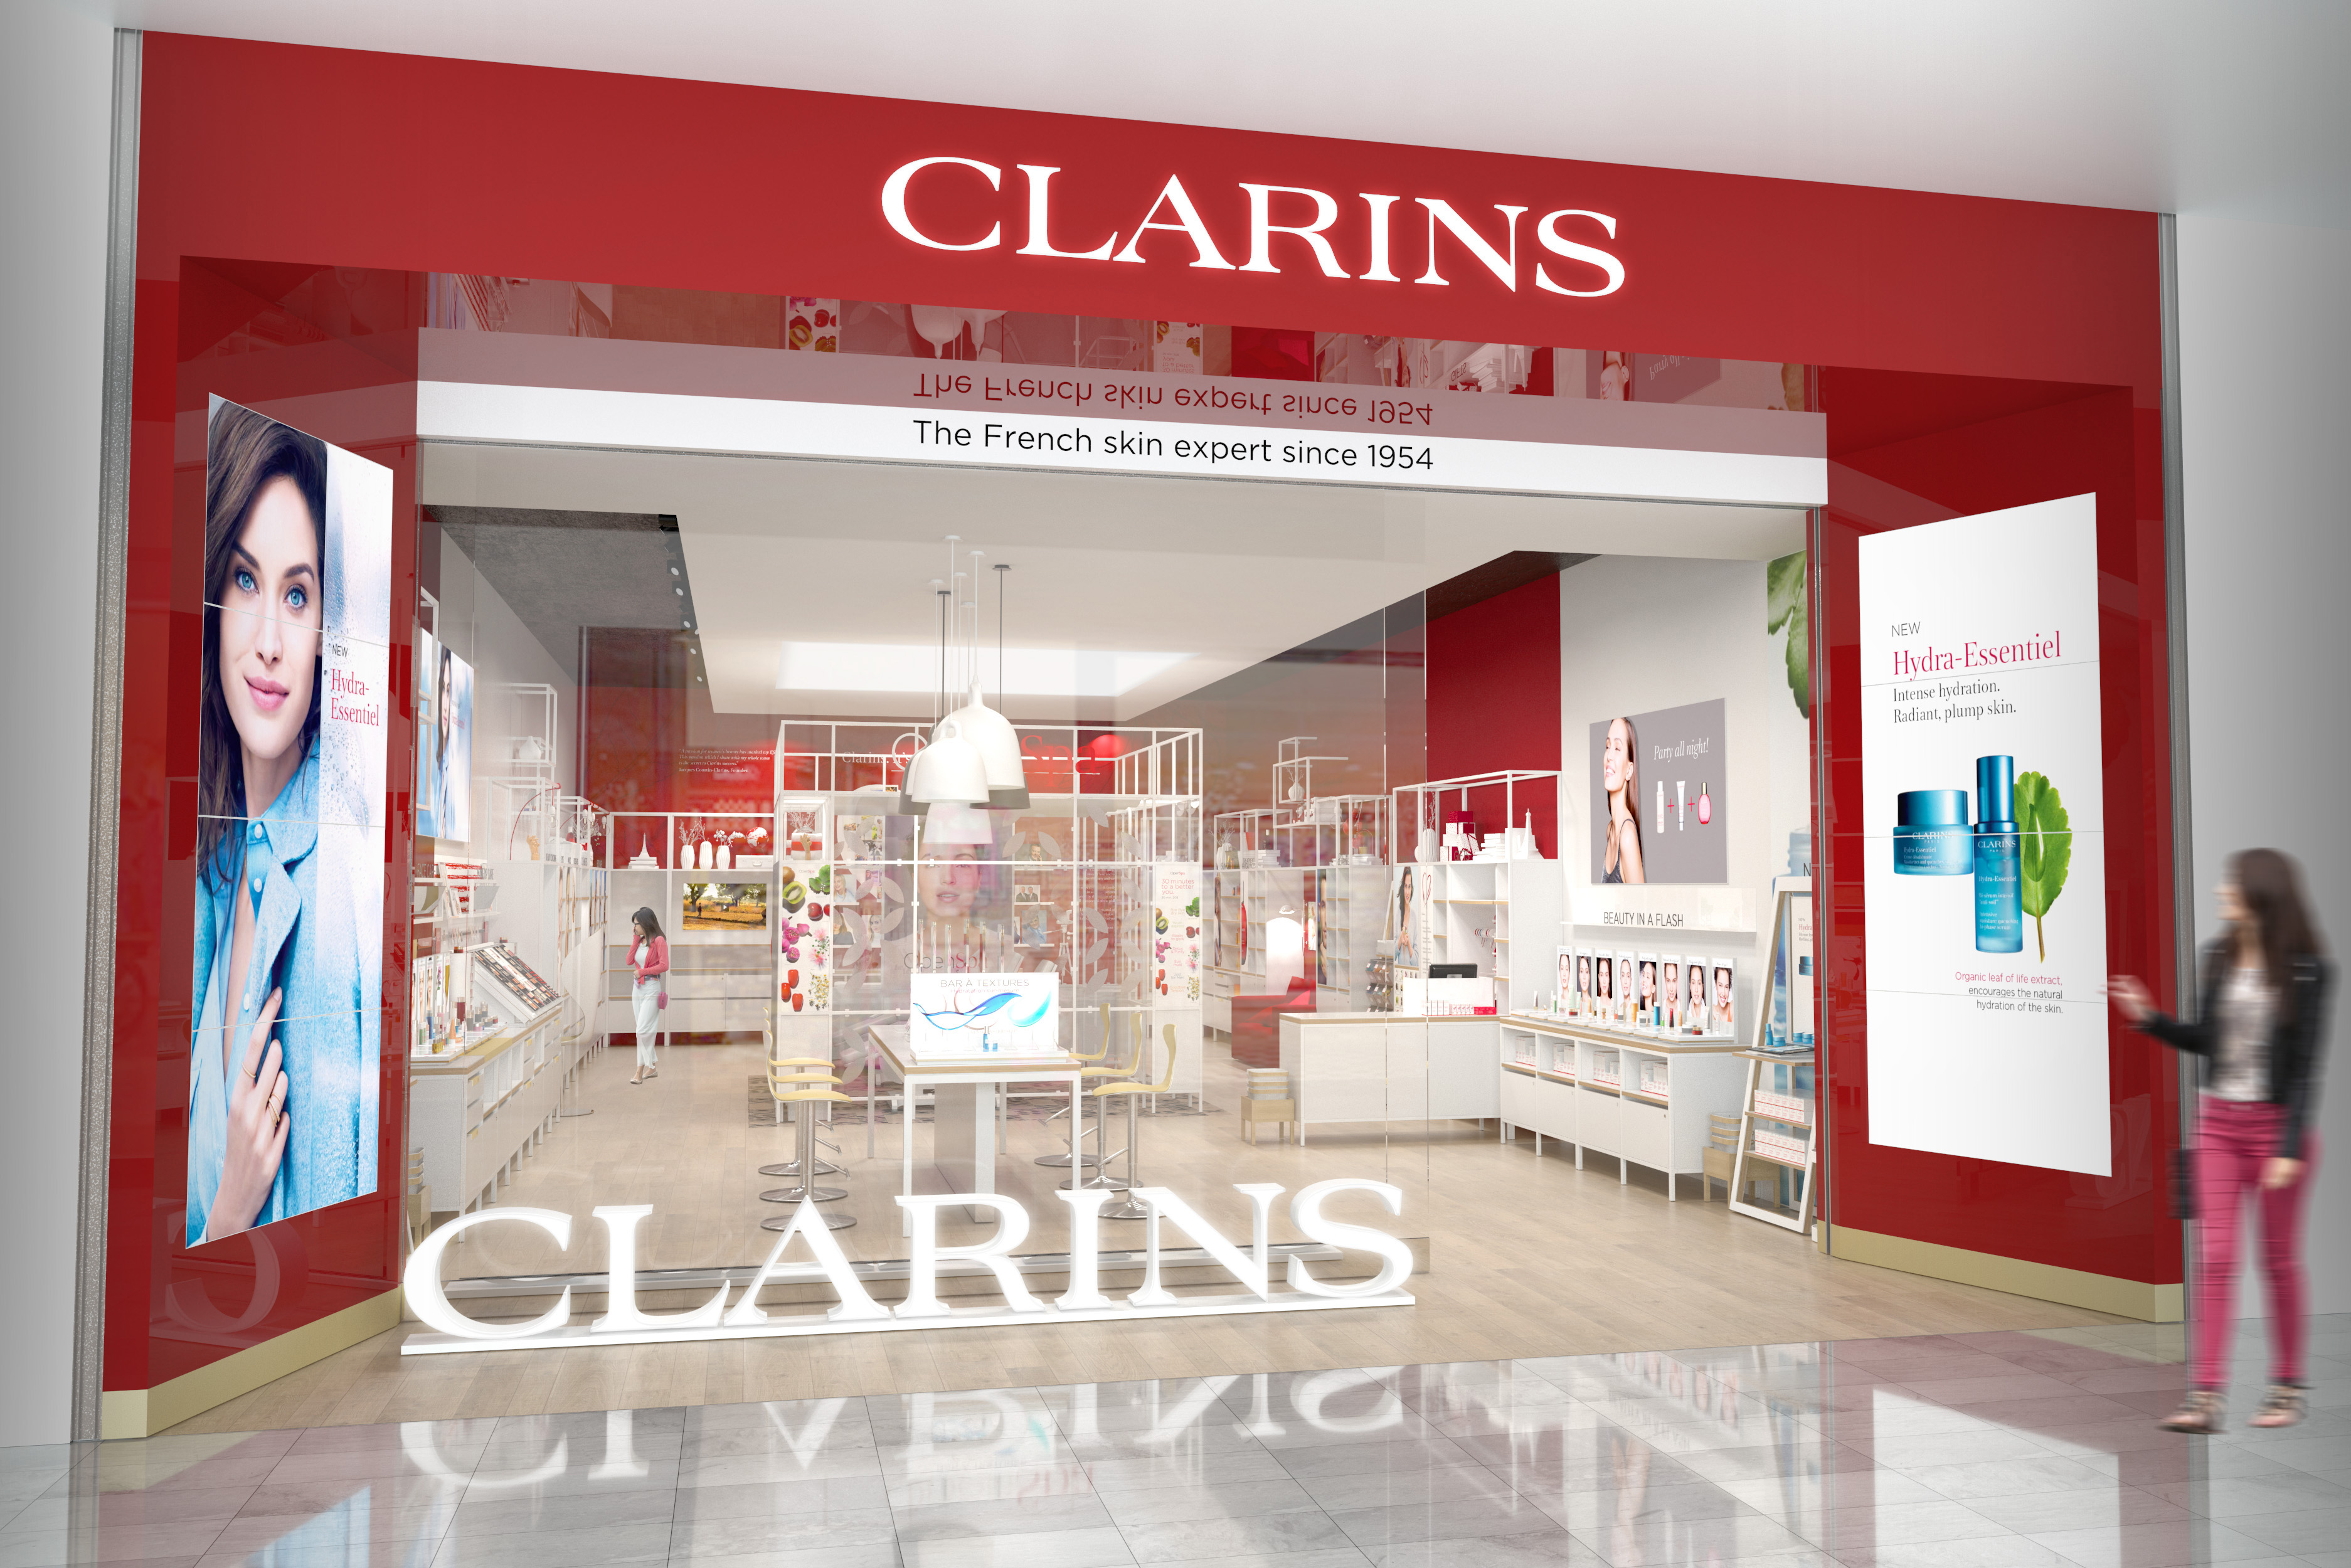 A rendering of the Clarins store.